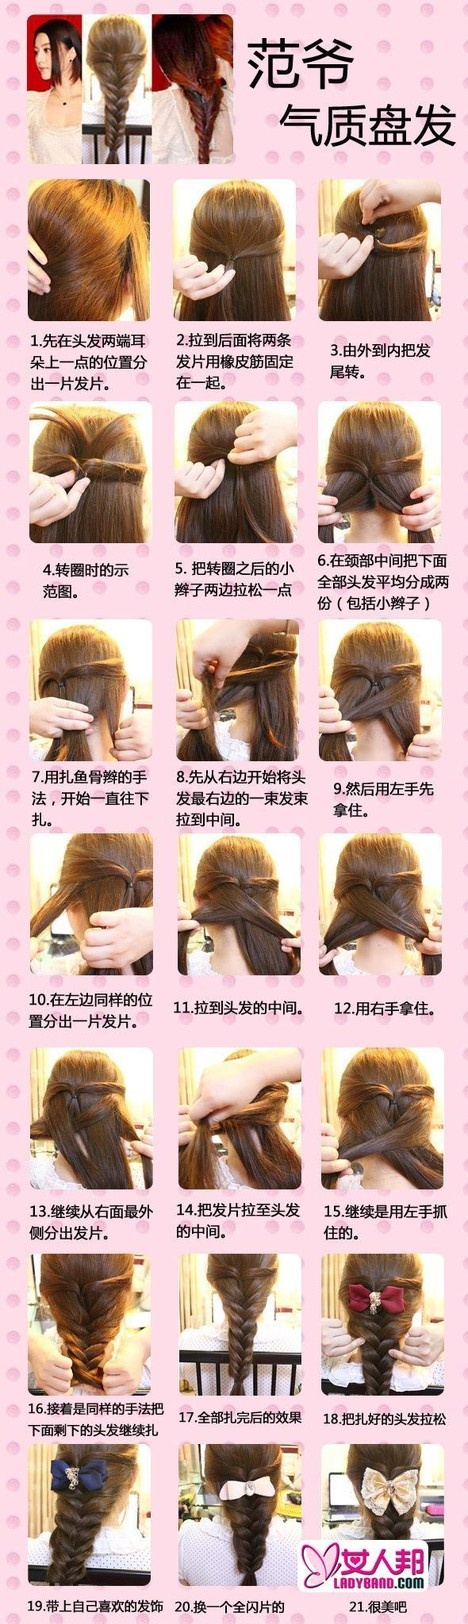 Cool braid.......although I'm not sure what the directions say because it's in Chinese or something lol